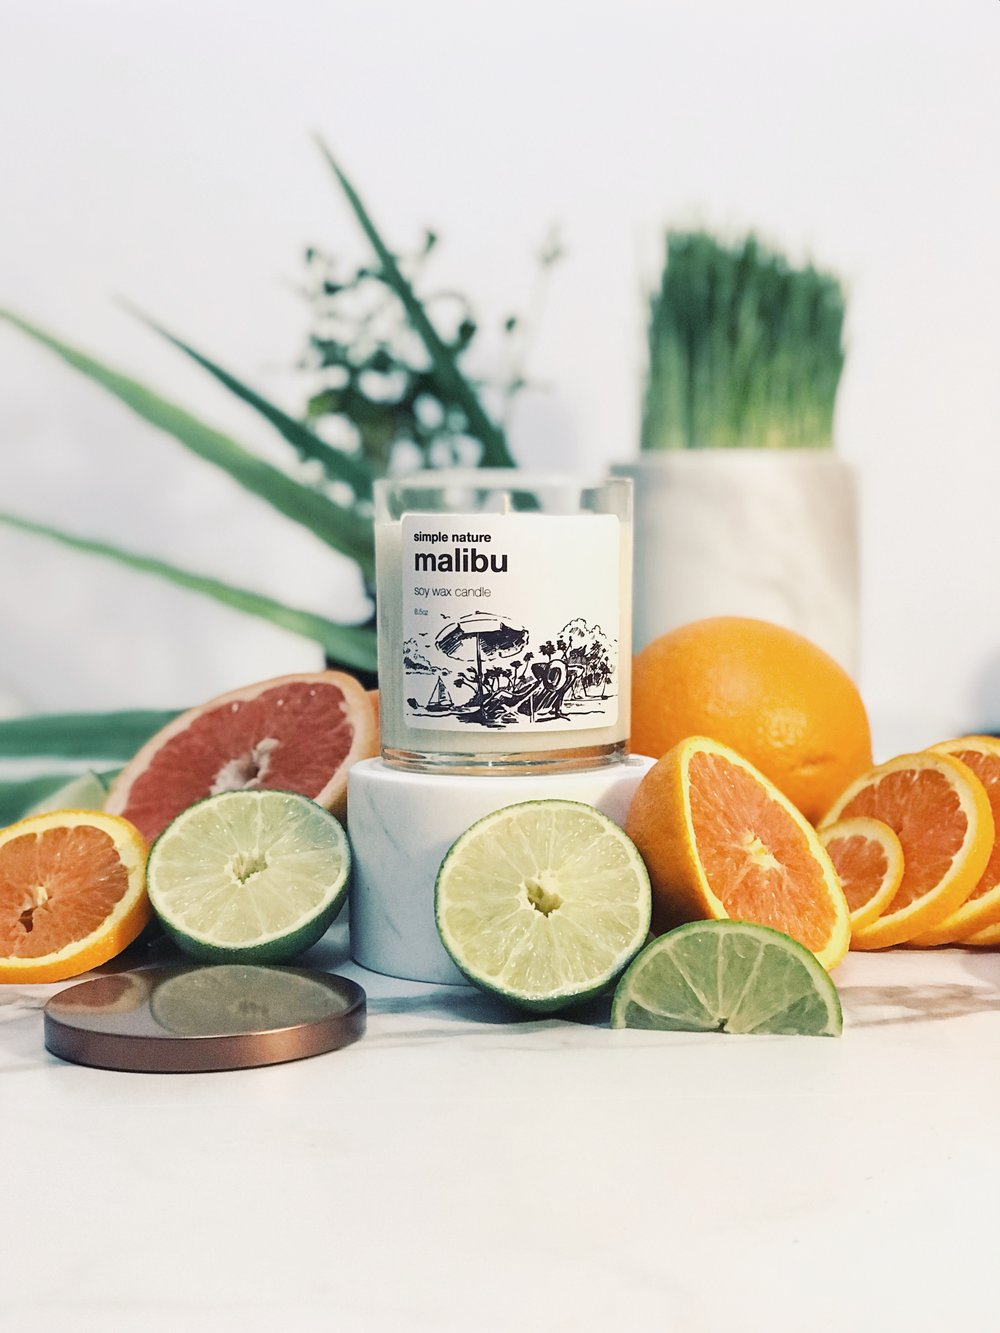 Simple Nature Malibu Candle